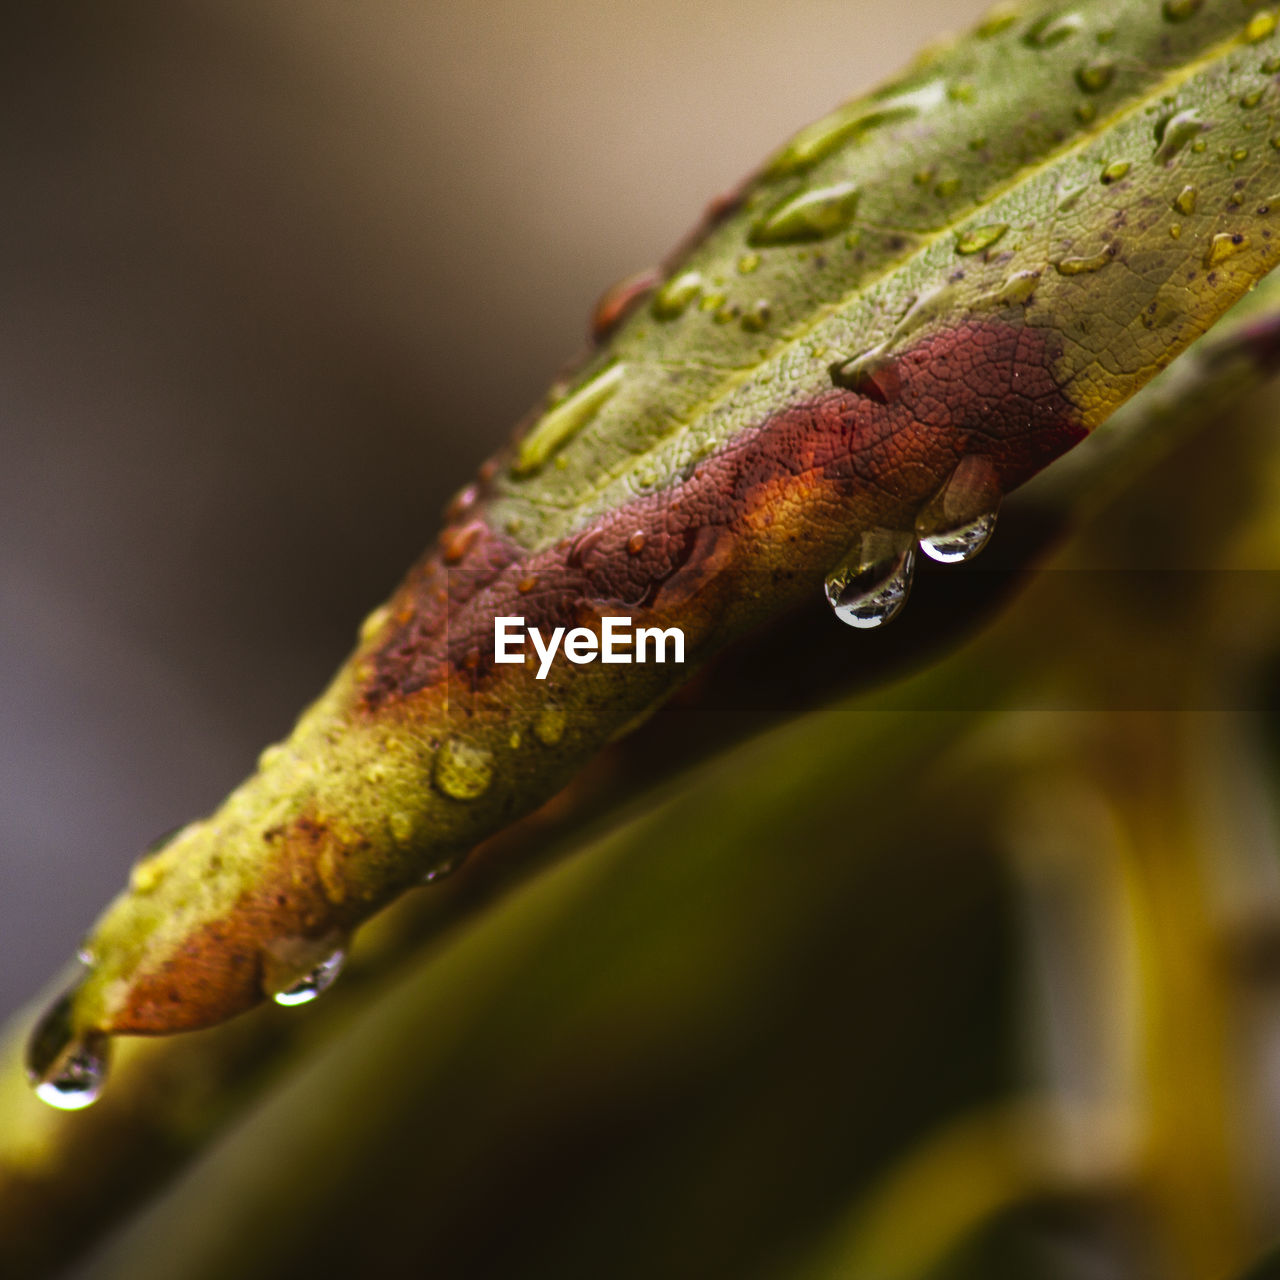 close-up, plant, selective focus, plant part, leaf, no people, nature, green color, growth, animal wildlife, focus on foreground, day, animal, animal themes, animals in the wild, one animal, drop, wet, outdoors, beauty in nature